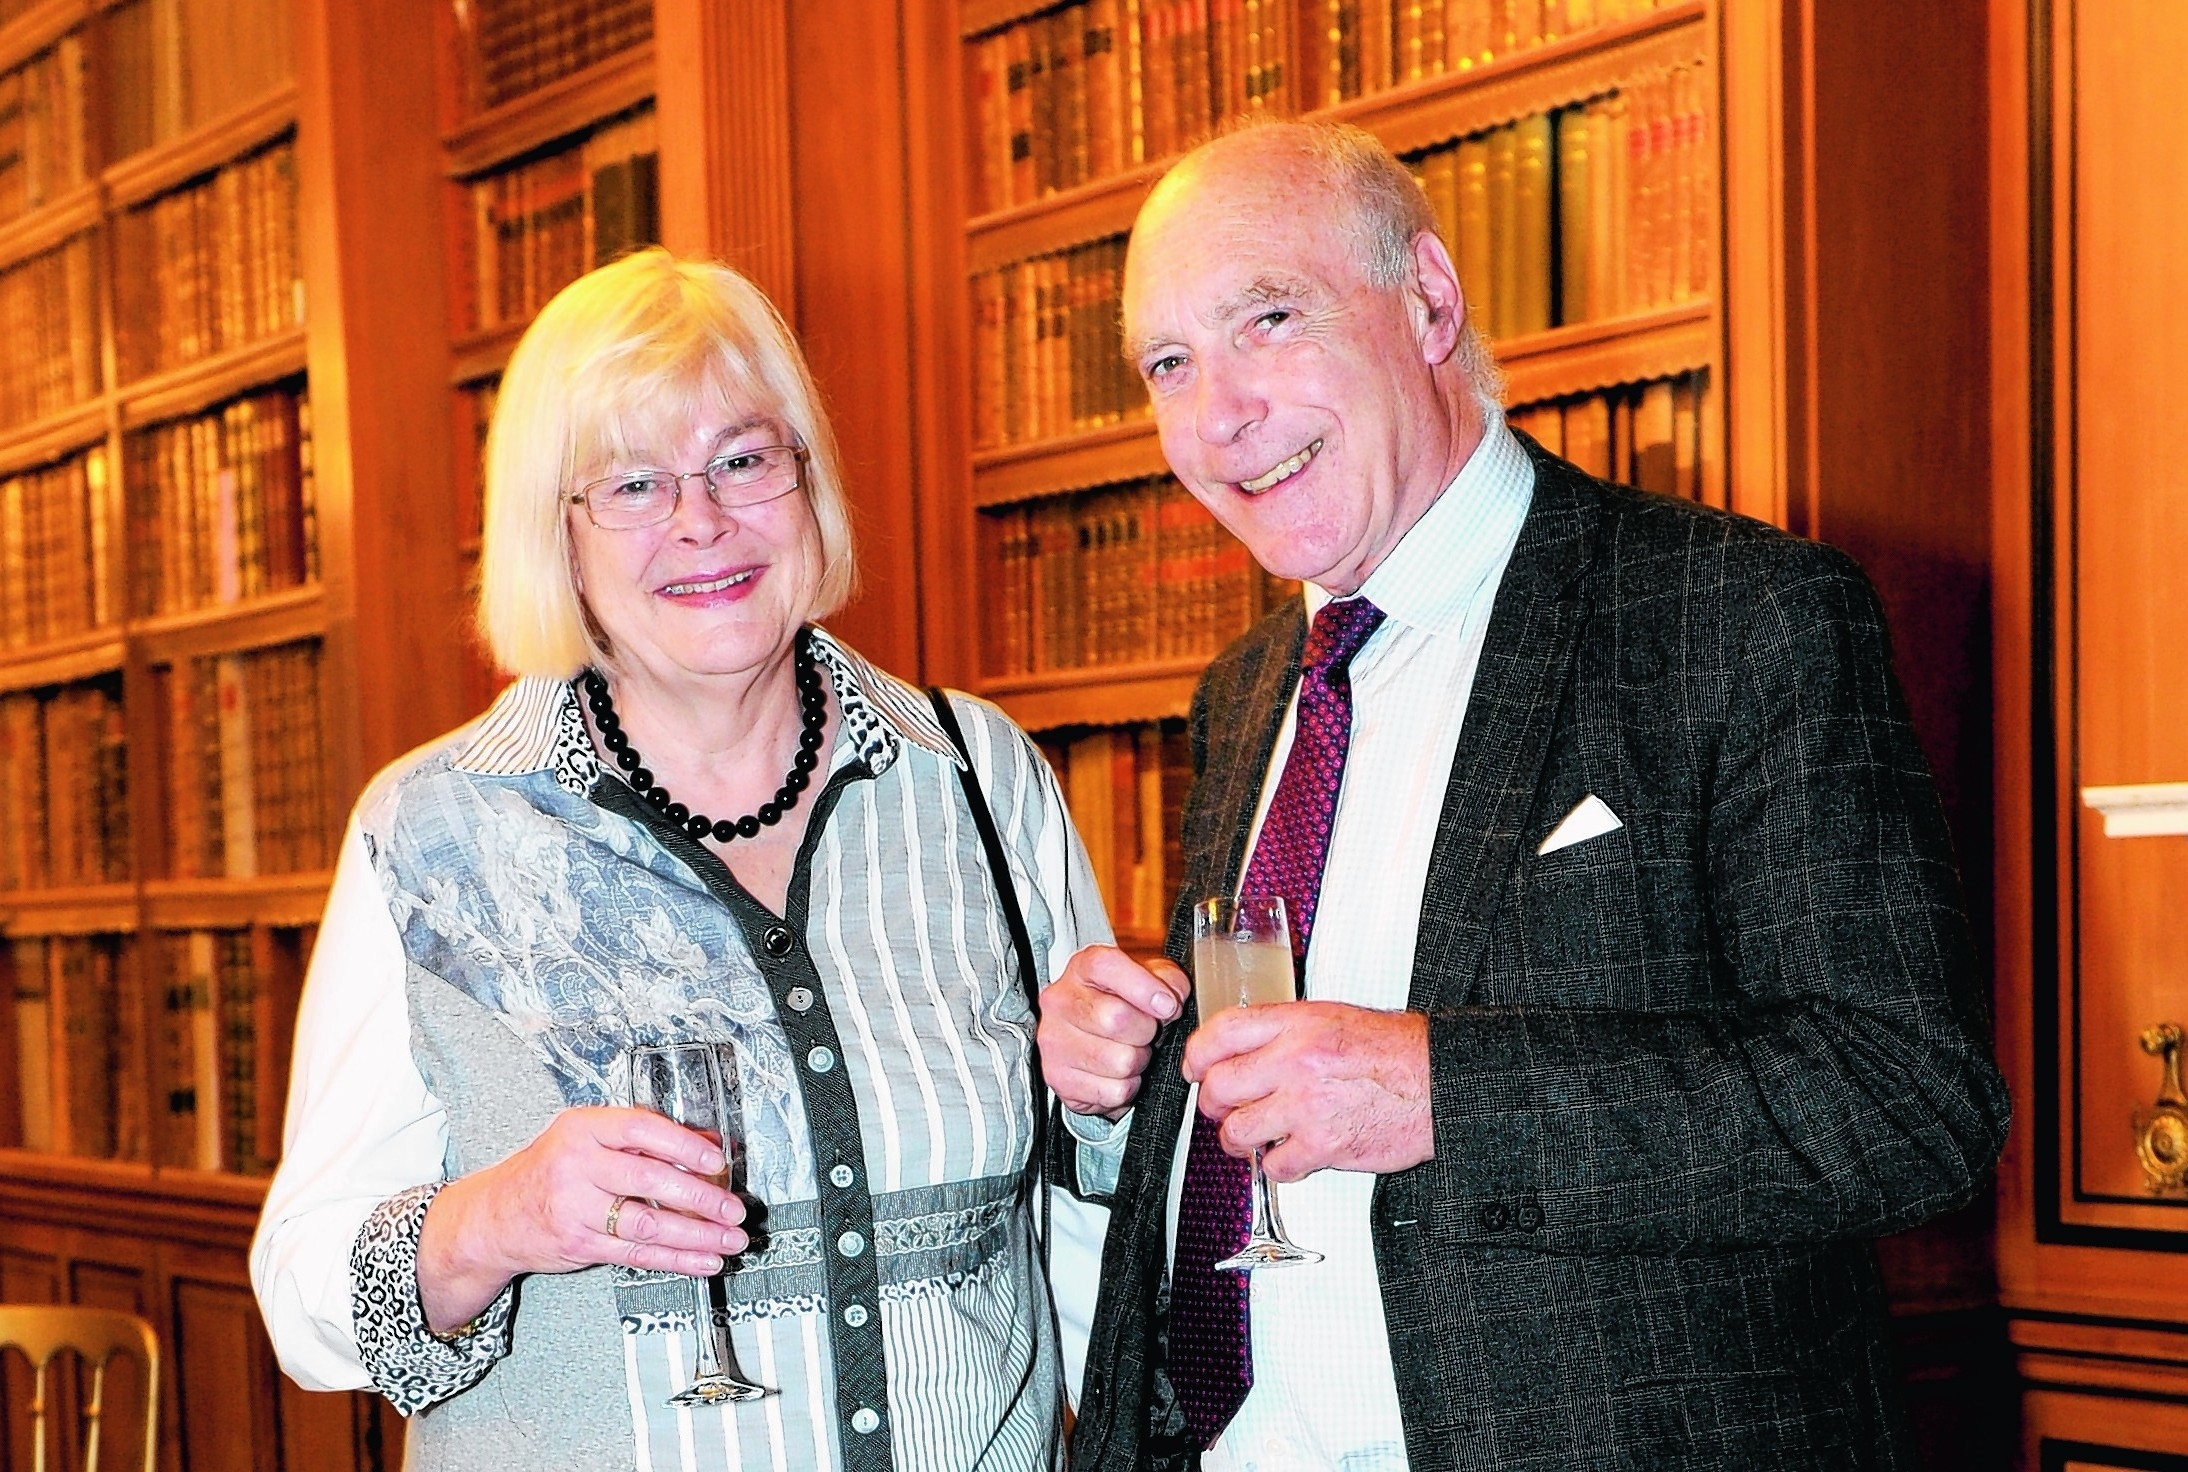 Delyth Parkinson and Roger Williams attending SHADES, Haddo Arts Festival 2014 launch event at Haddo House library.